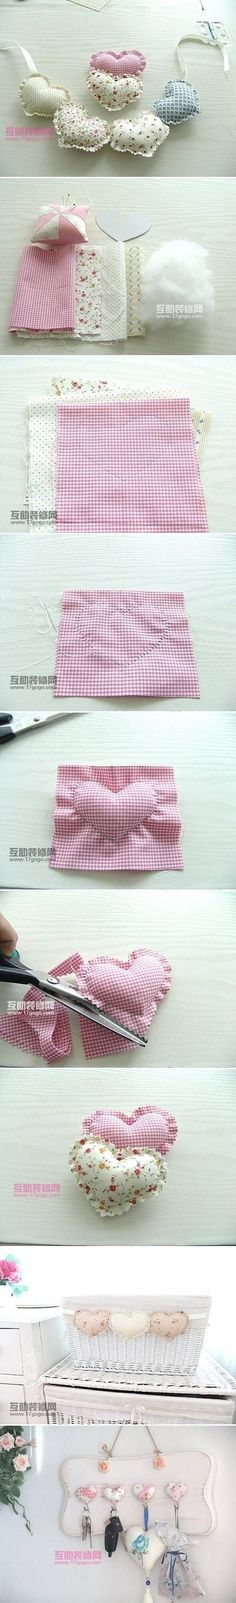 DIY Fabric Heart Pendant...Hippie Hugs with Love, Michele